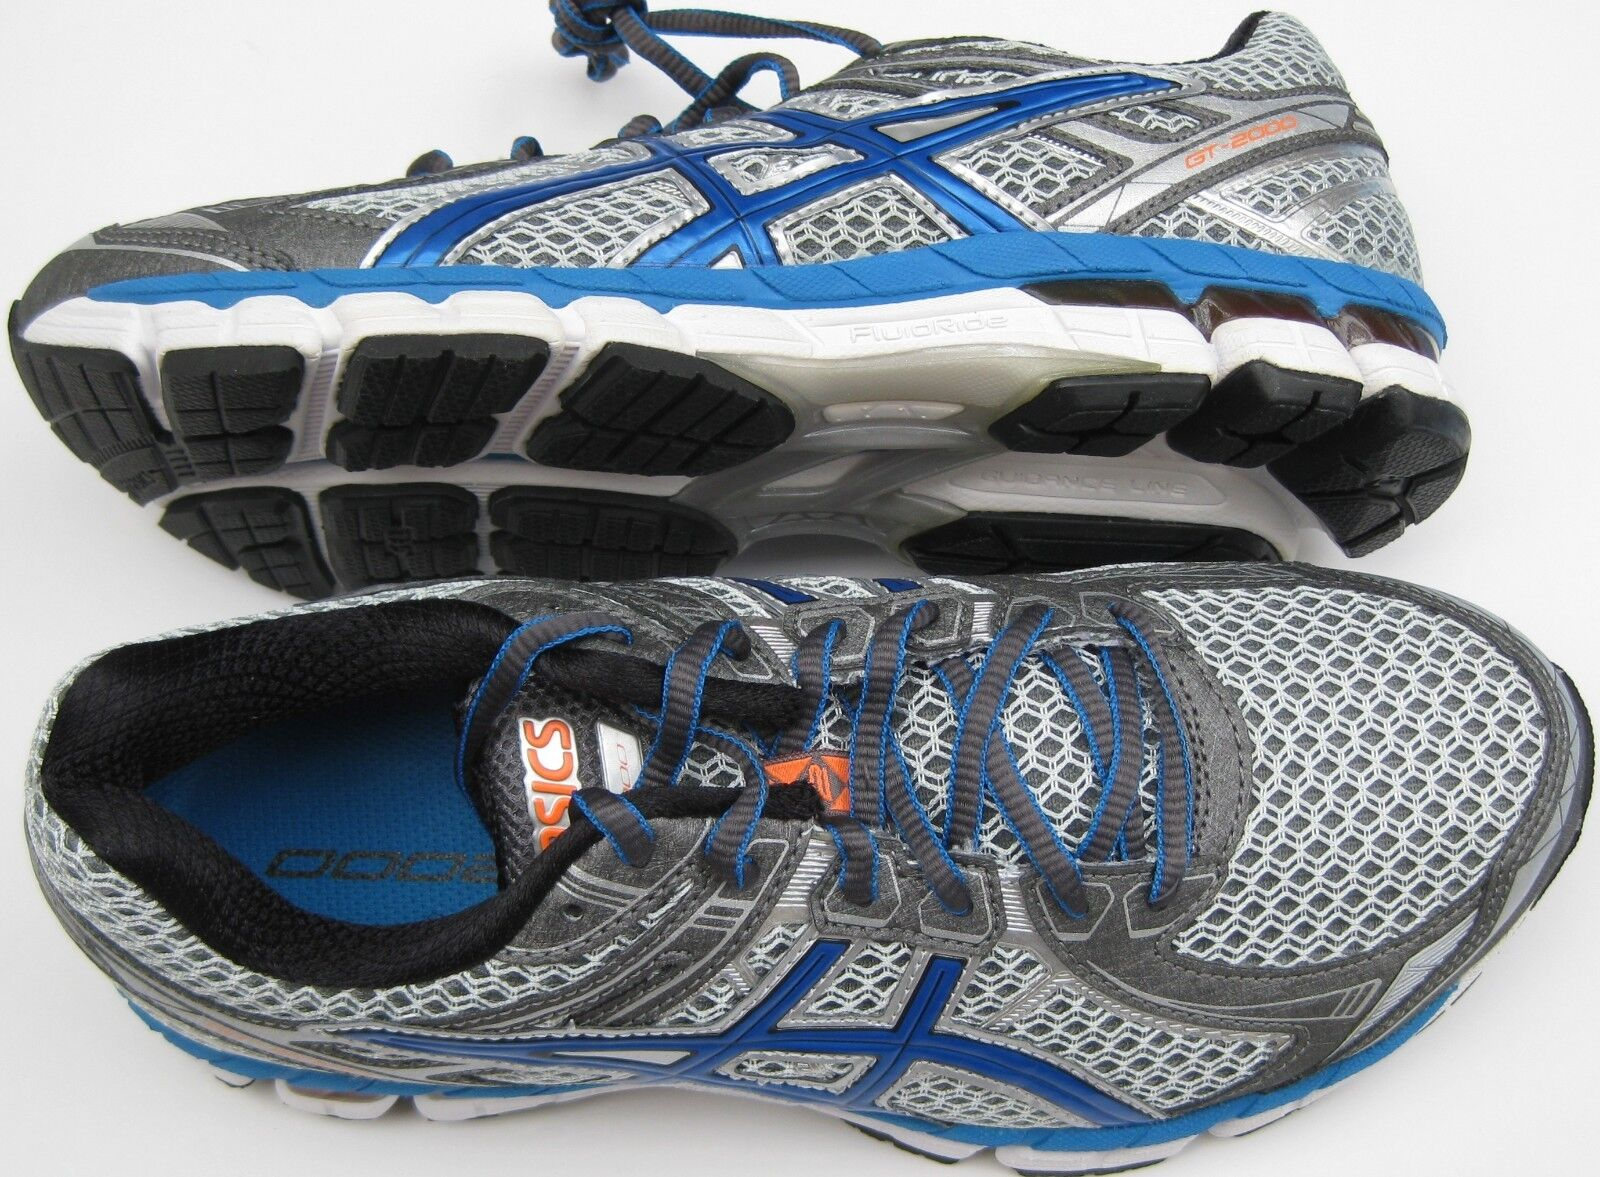 New Asics GT-2000 2,Surveyor 2 Uomo Sz 7 Pck Pck Pck 1 High performance trainers 7e27ba